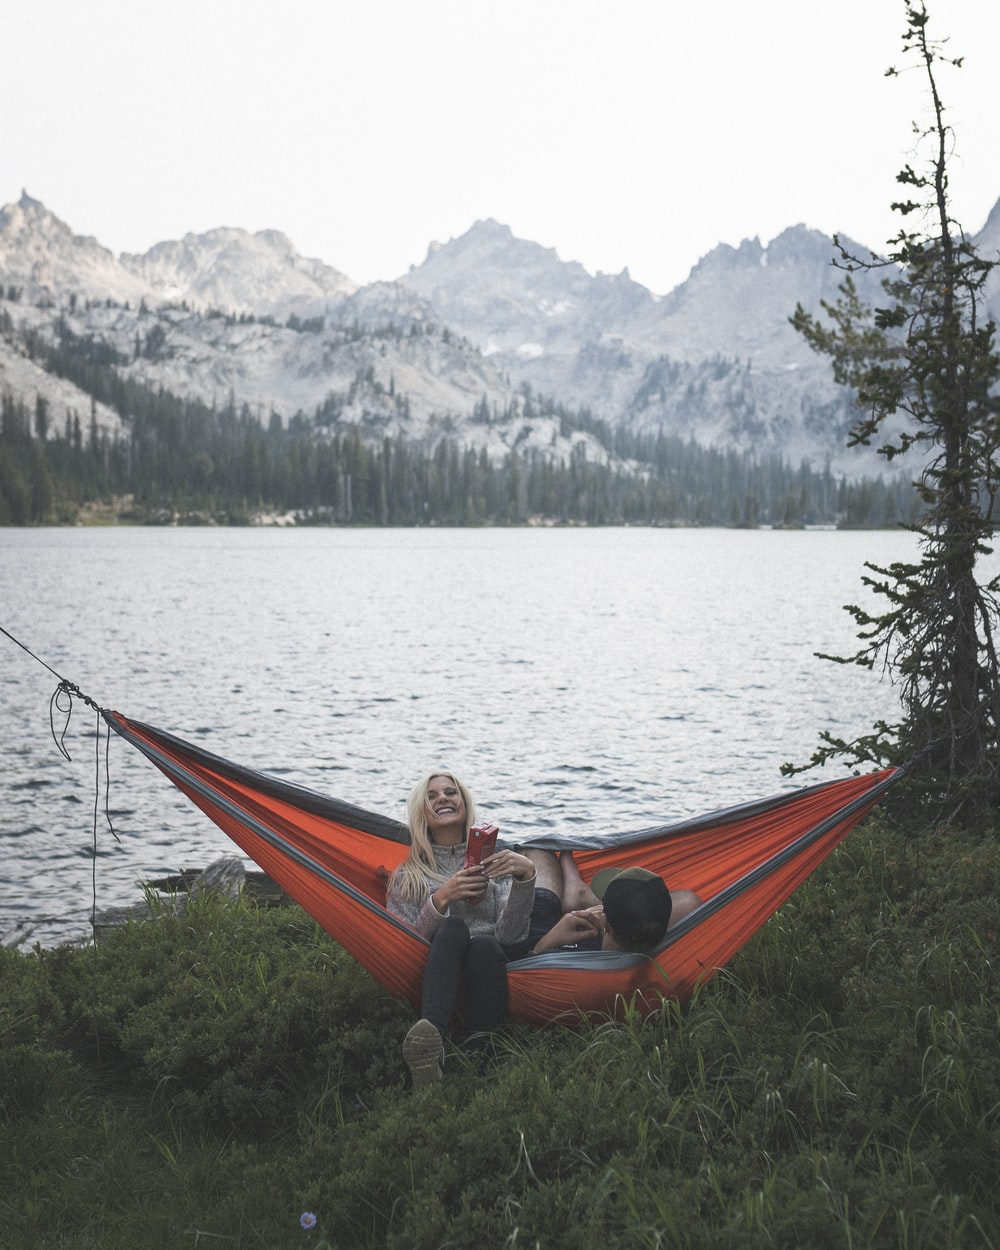 two person riding on hammock swing